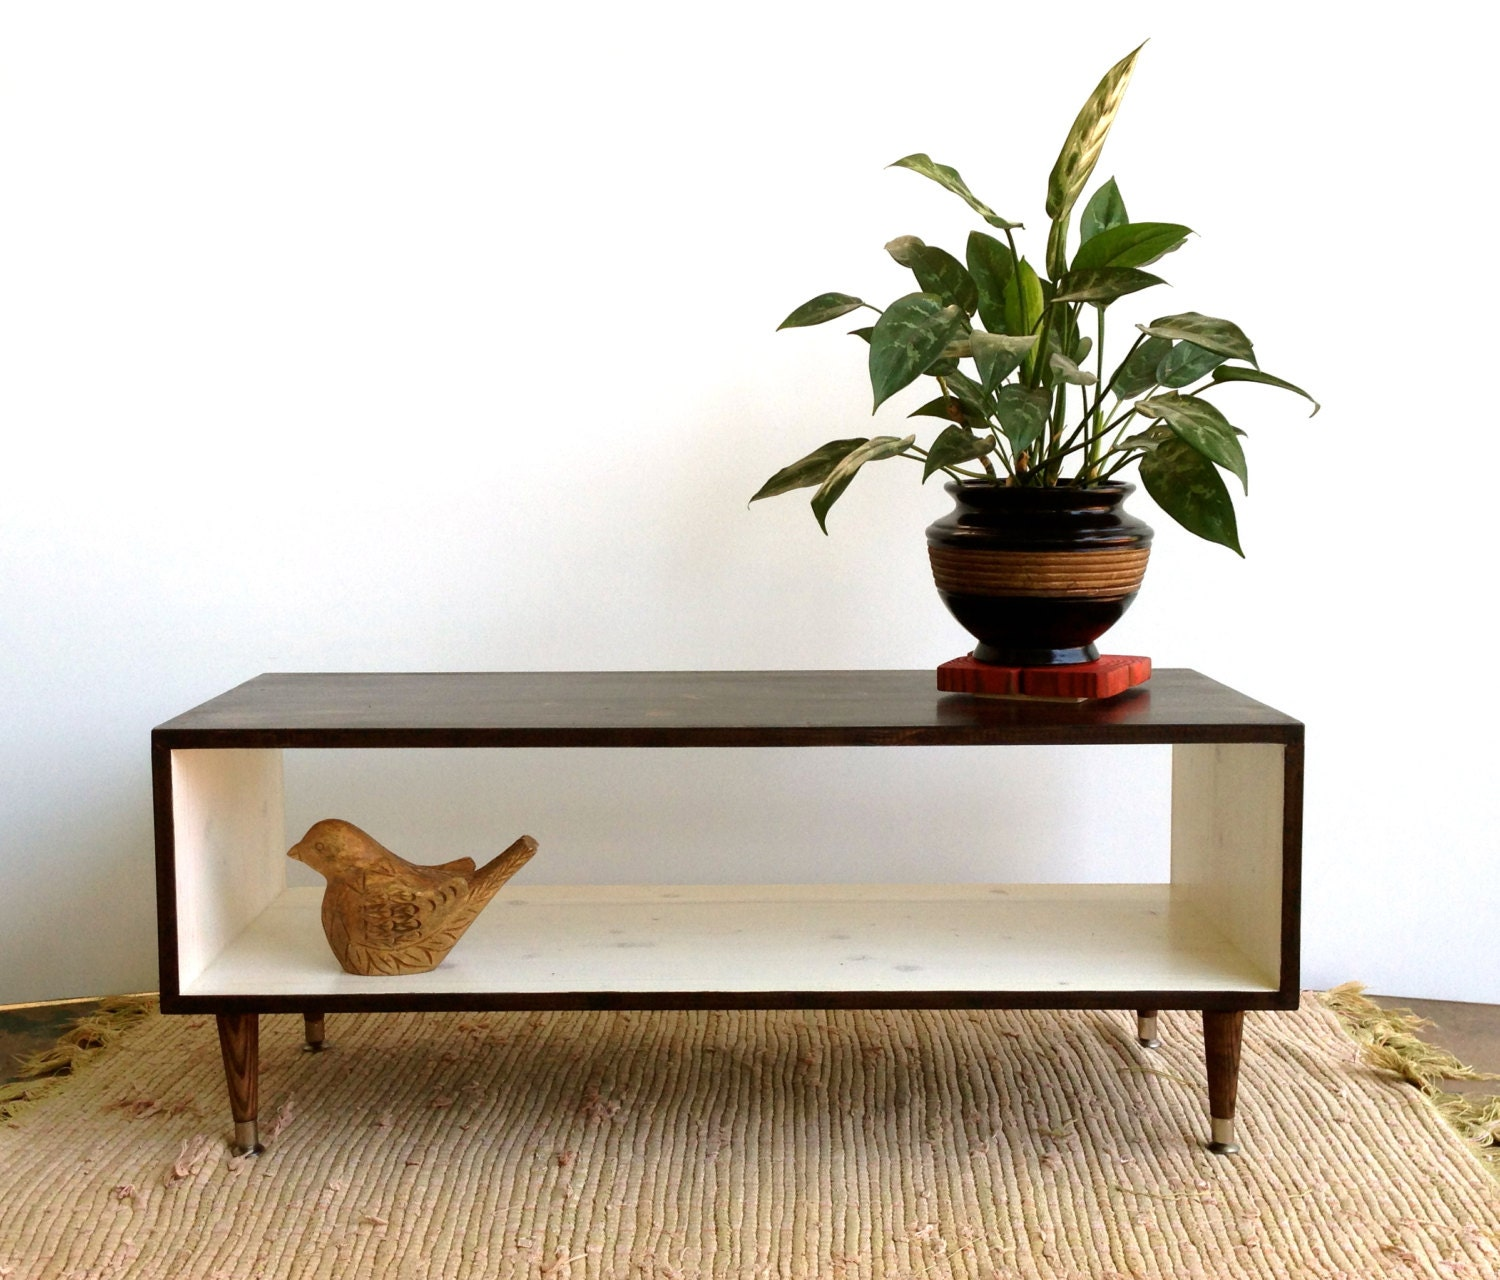 Handmade coffee table mid century modern white by tinylionsdesigns Handcrafted coffee table